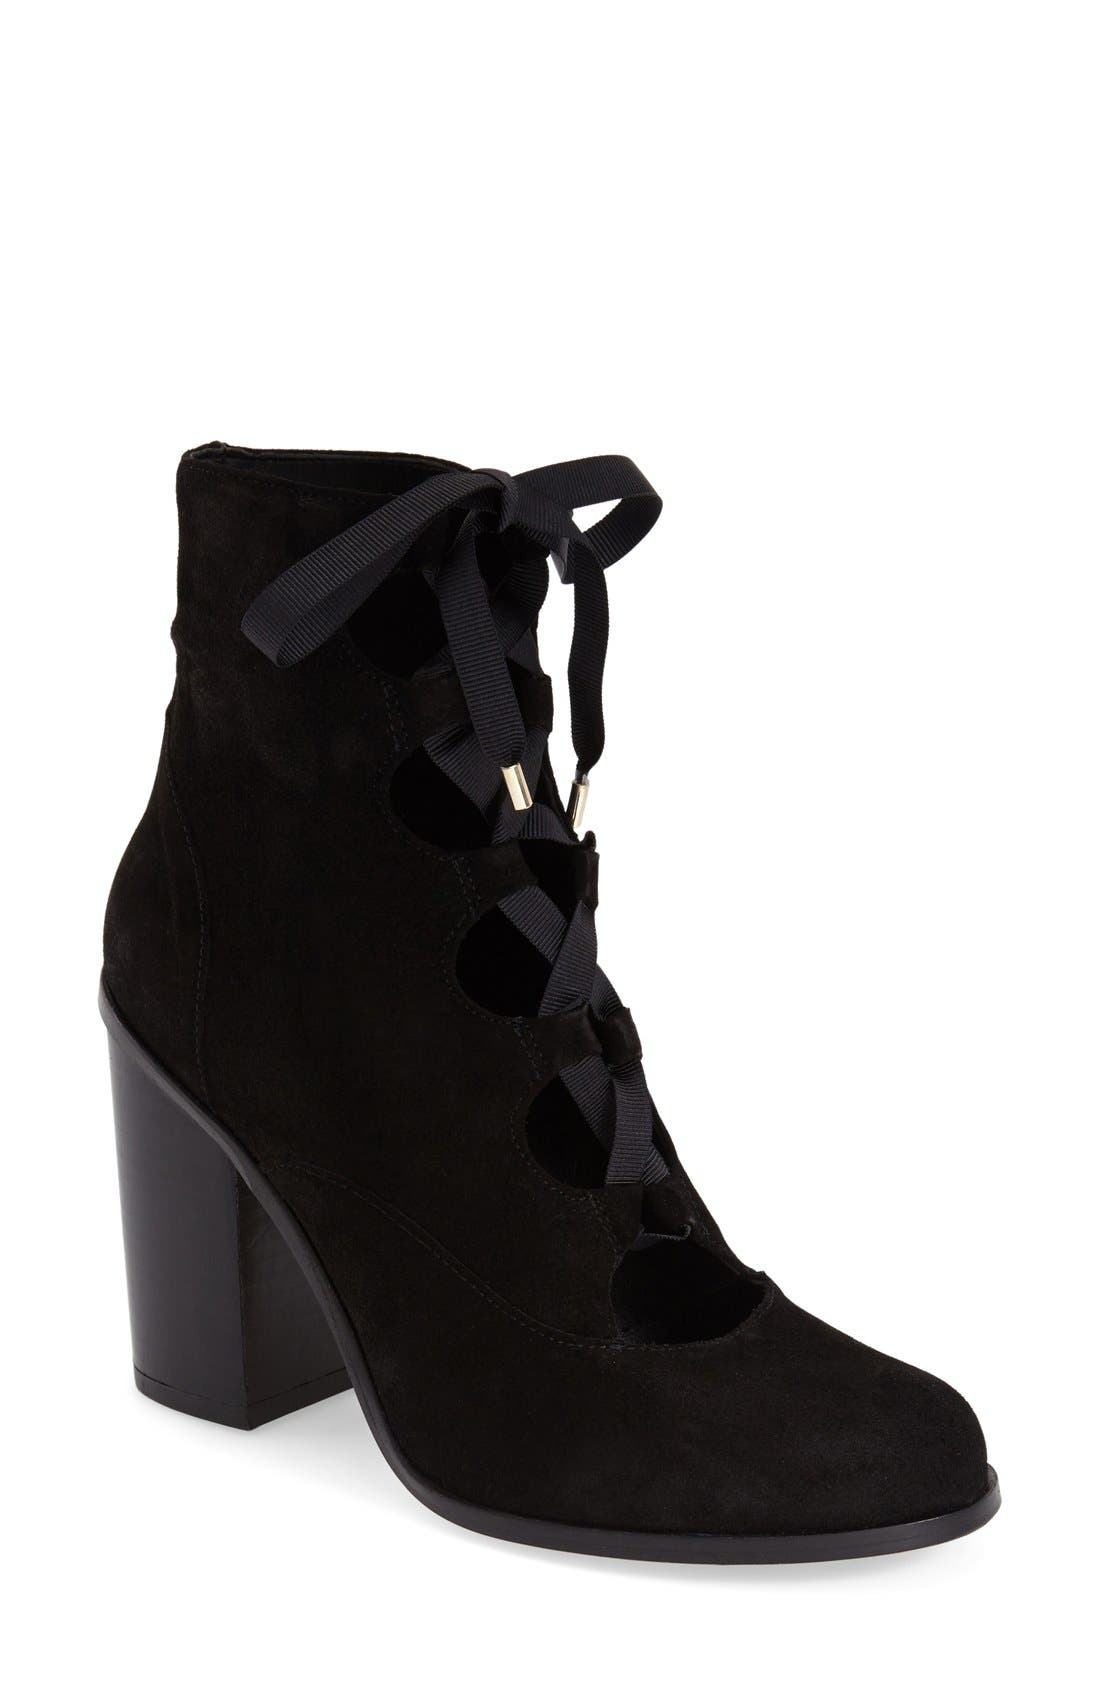 Main Image - Topshop 'Magpie' Ghillie Boot (Women)